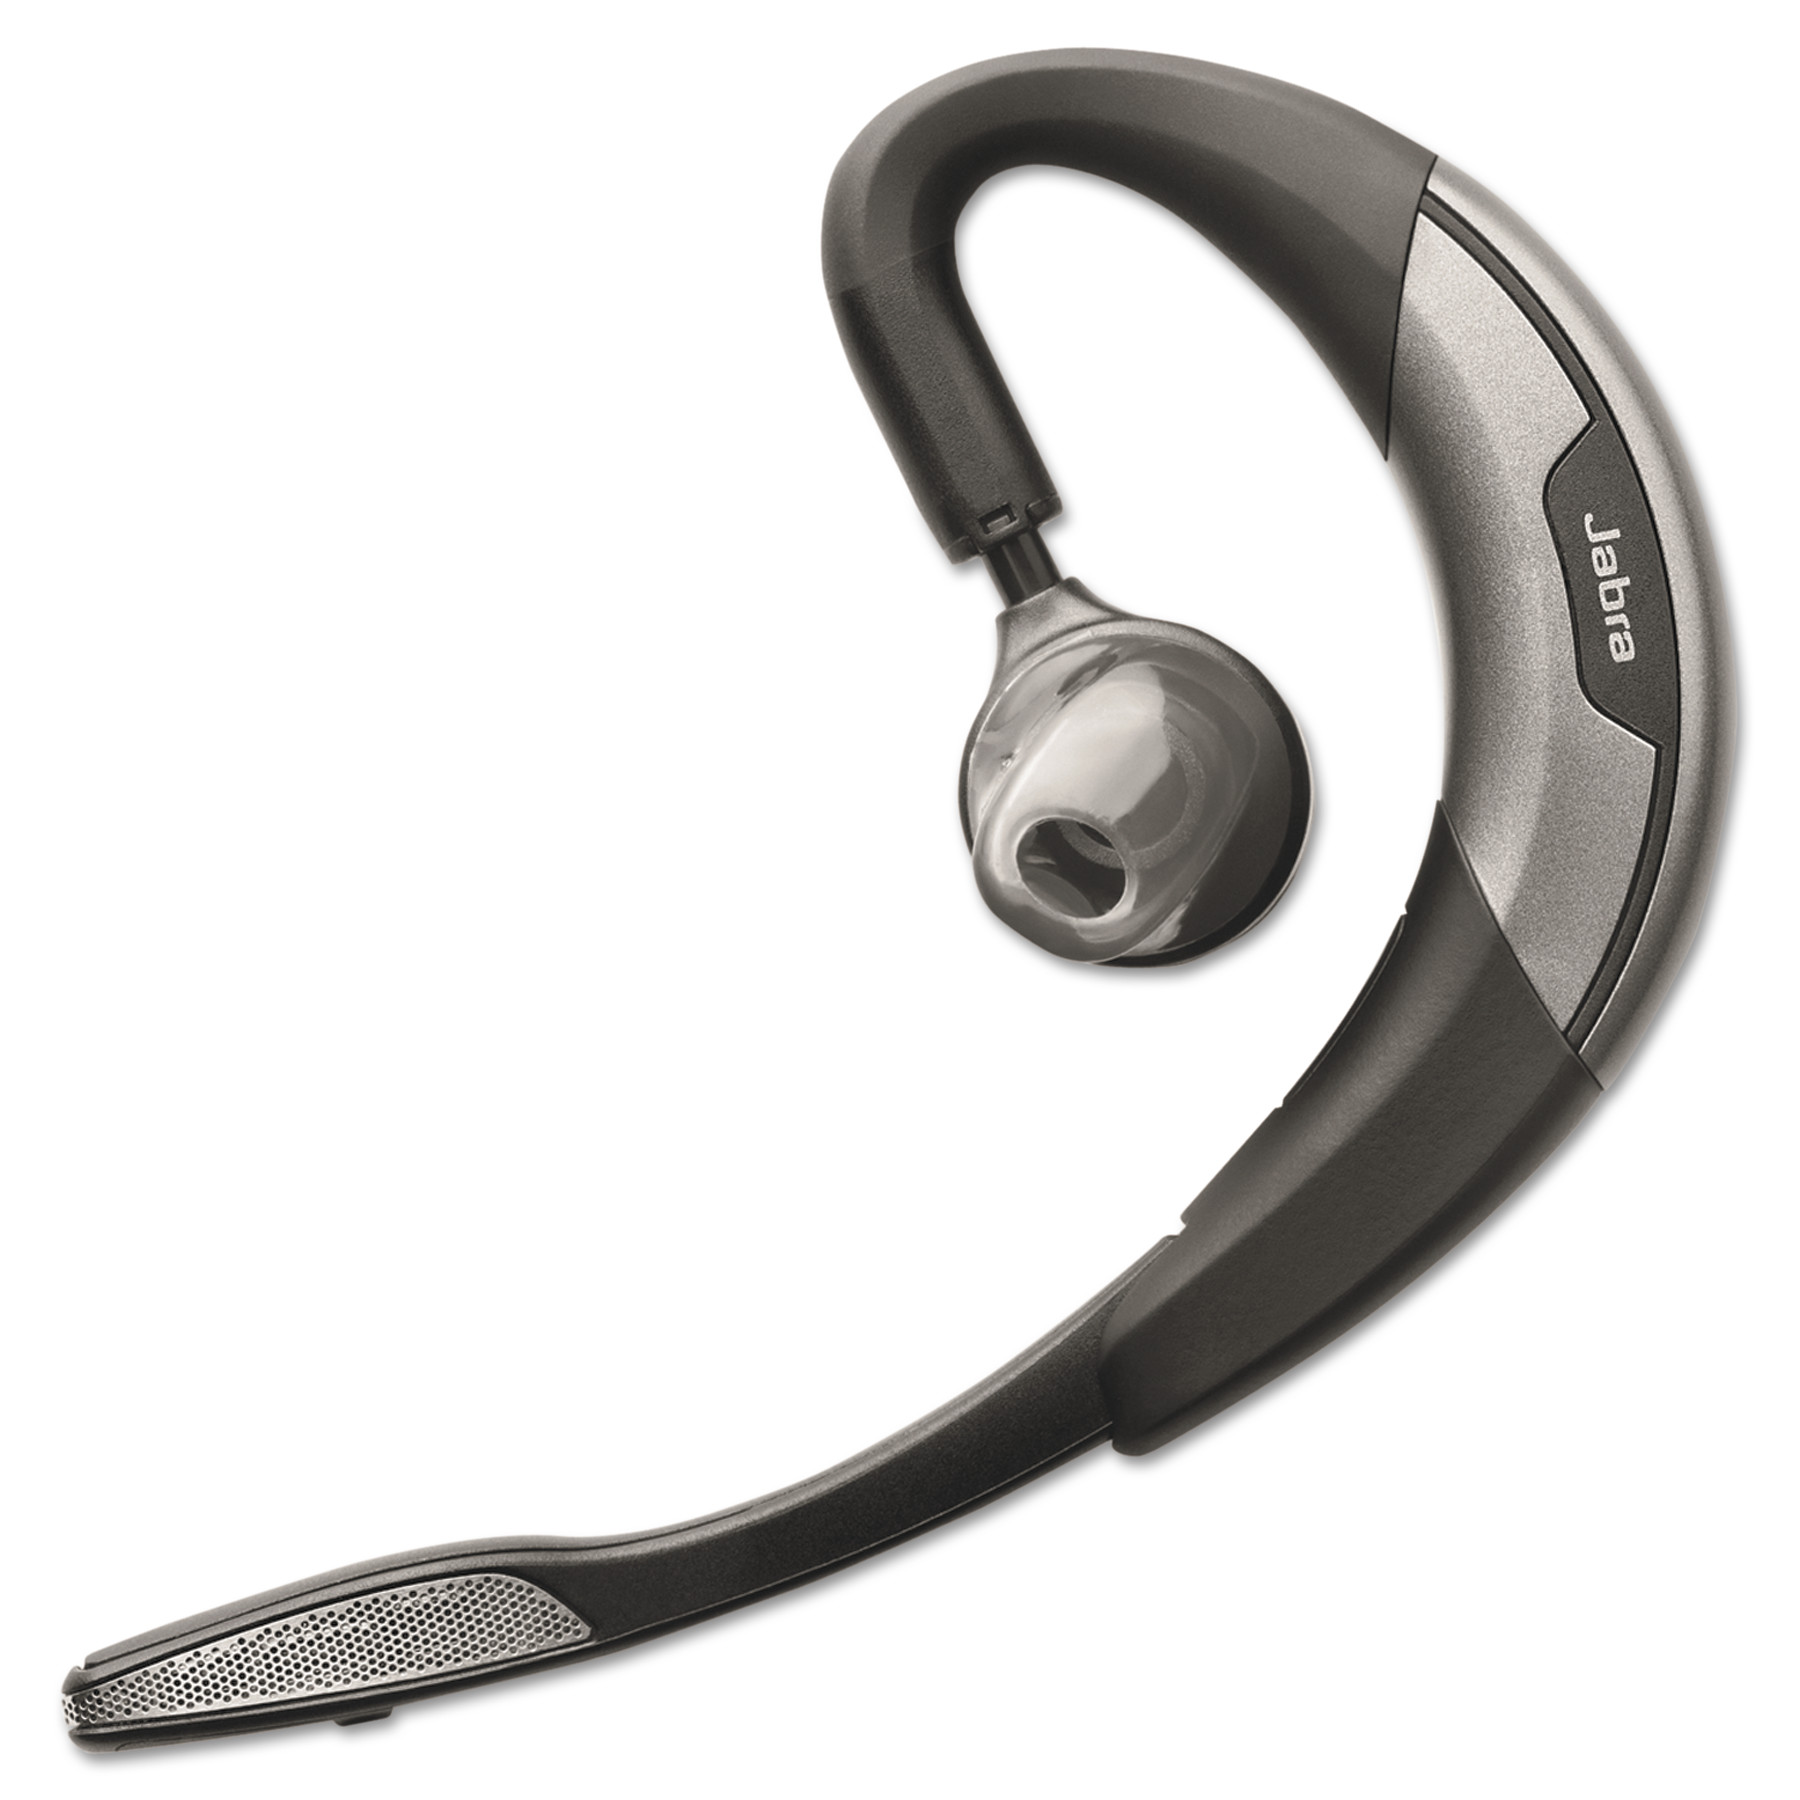 Jabra Motion UC+ Monaural Behind-the-Ear Bluetooth Headset